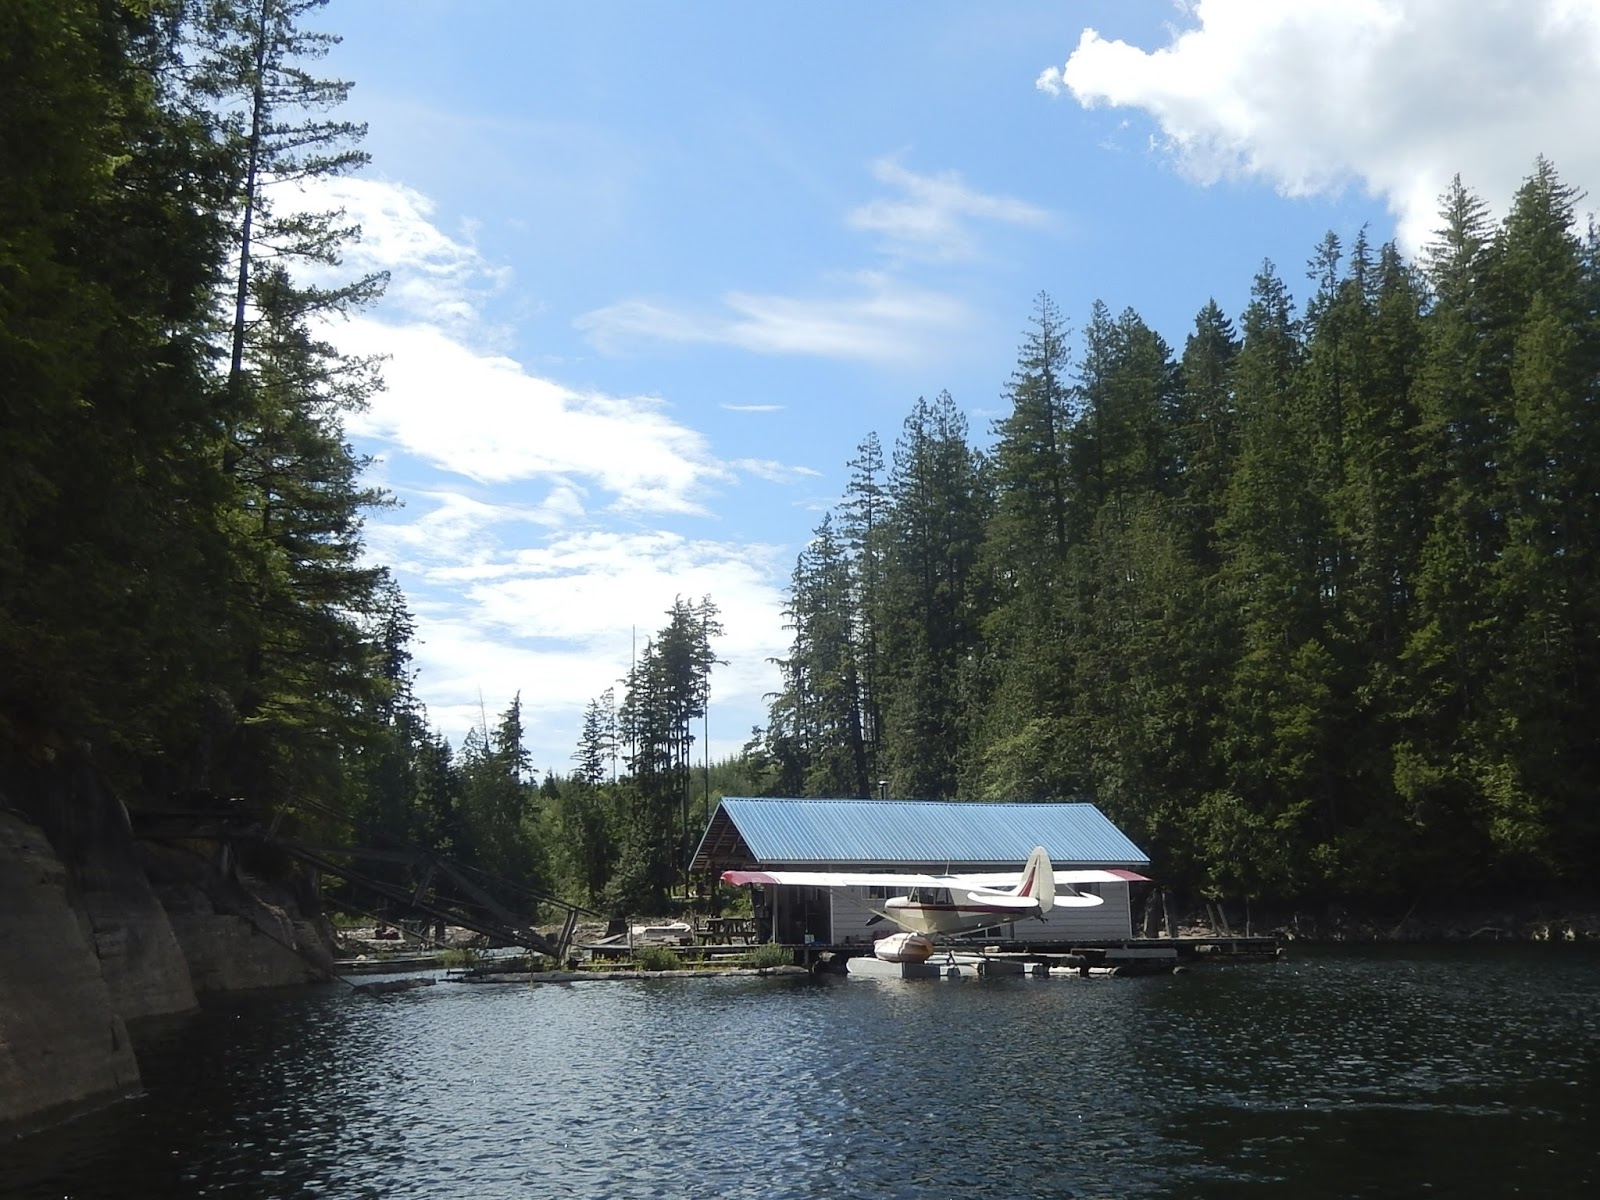 Powell river books blog update float cabins for sale on for Lakes in bc with cabins